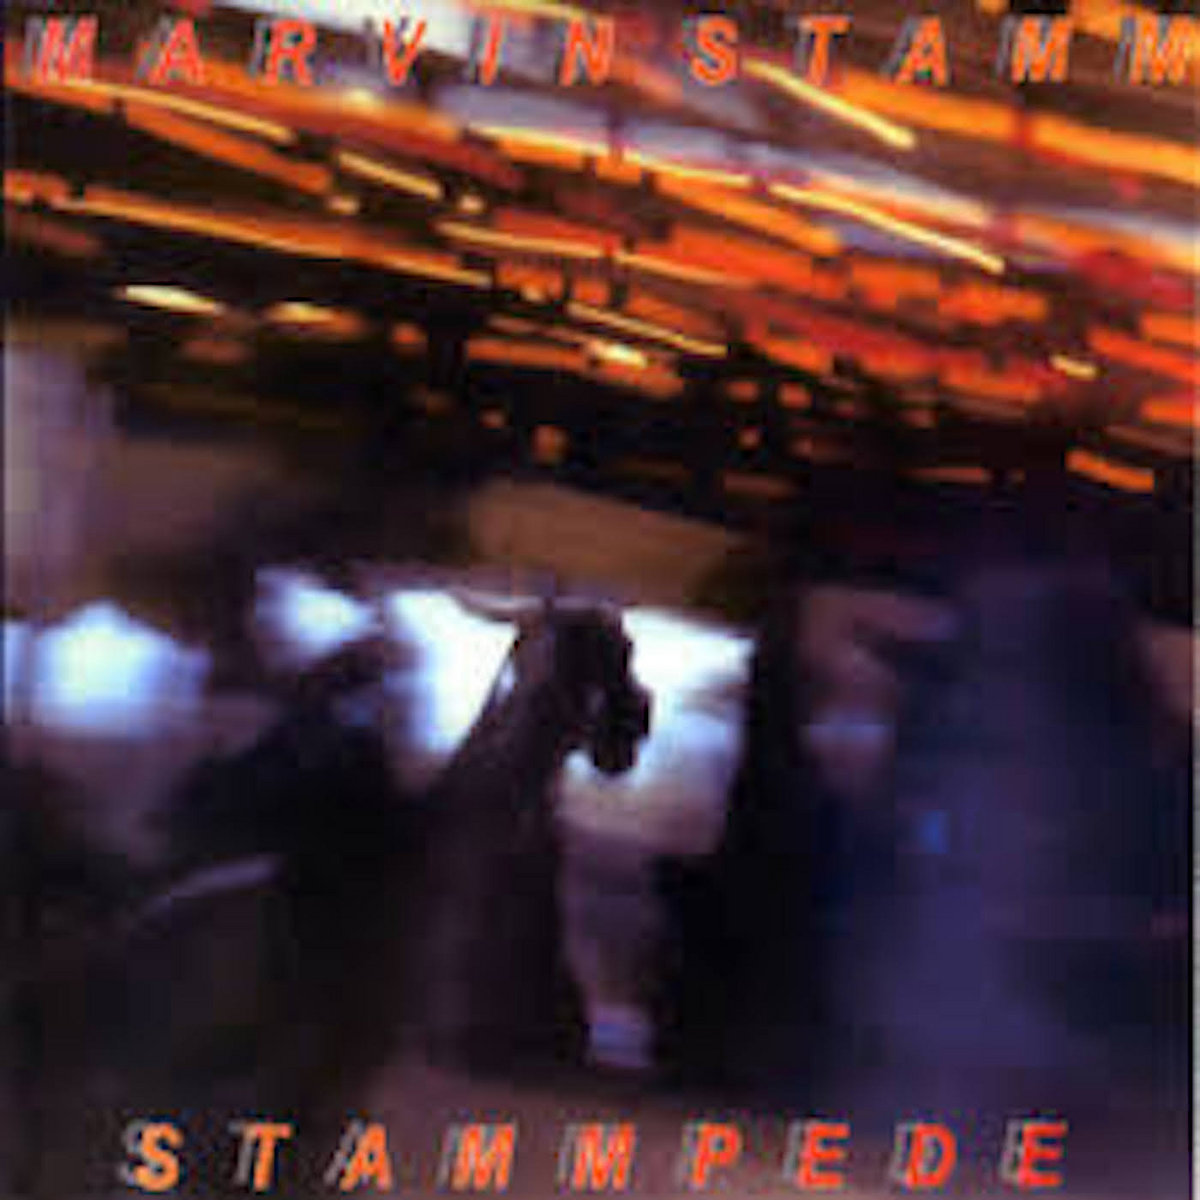 Album Stammpede by Marvin Stamm